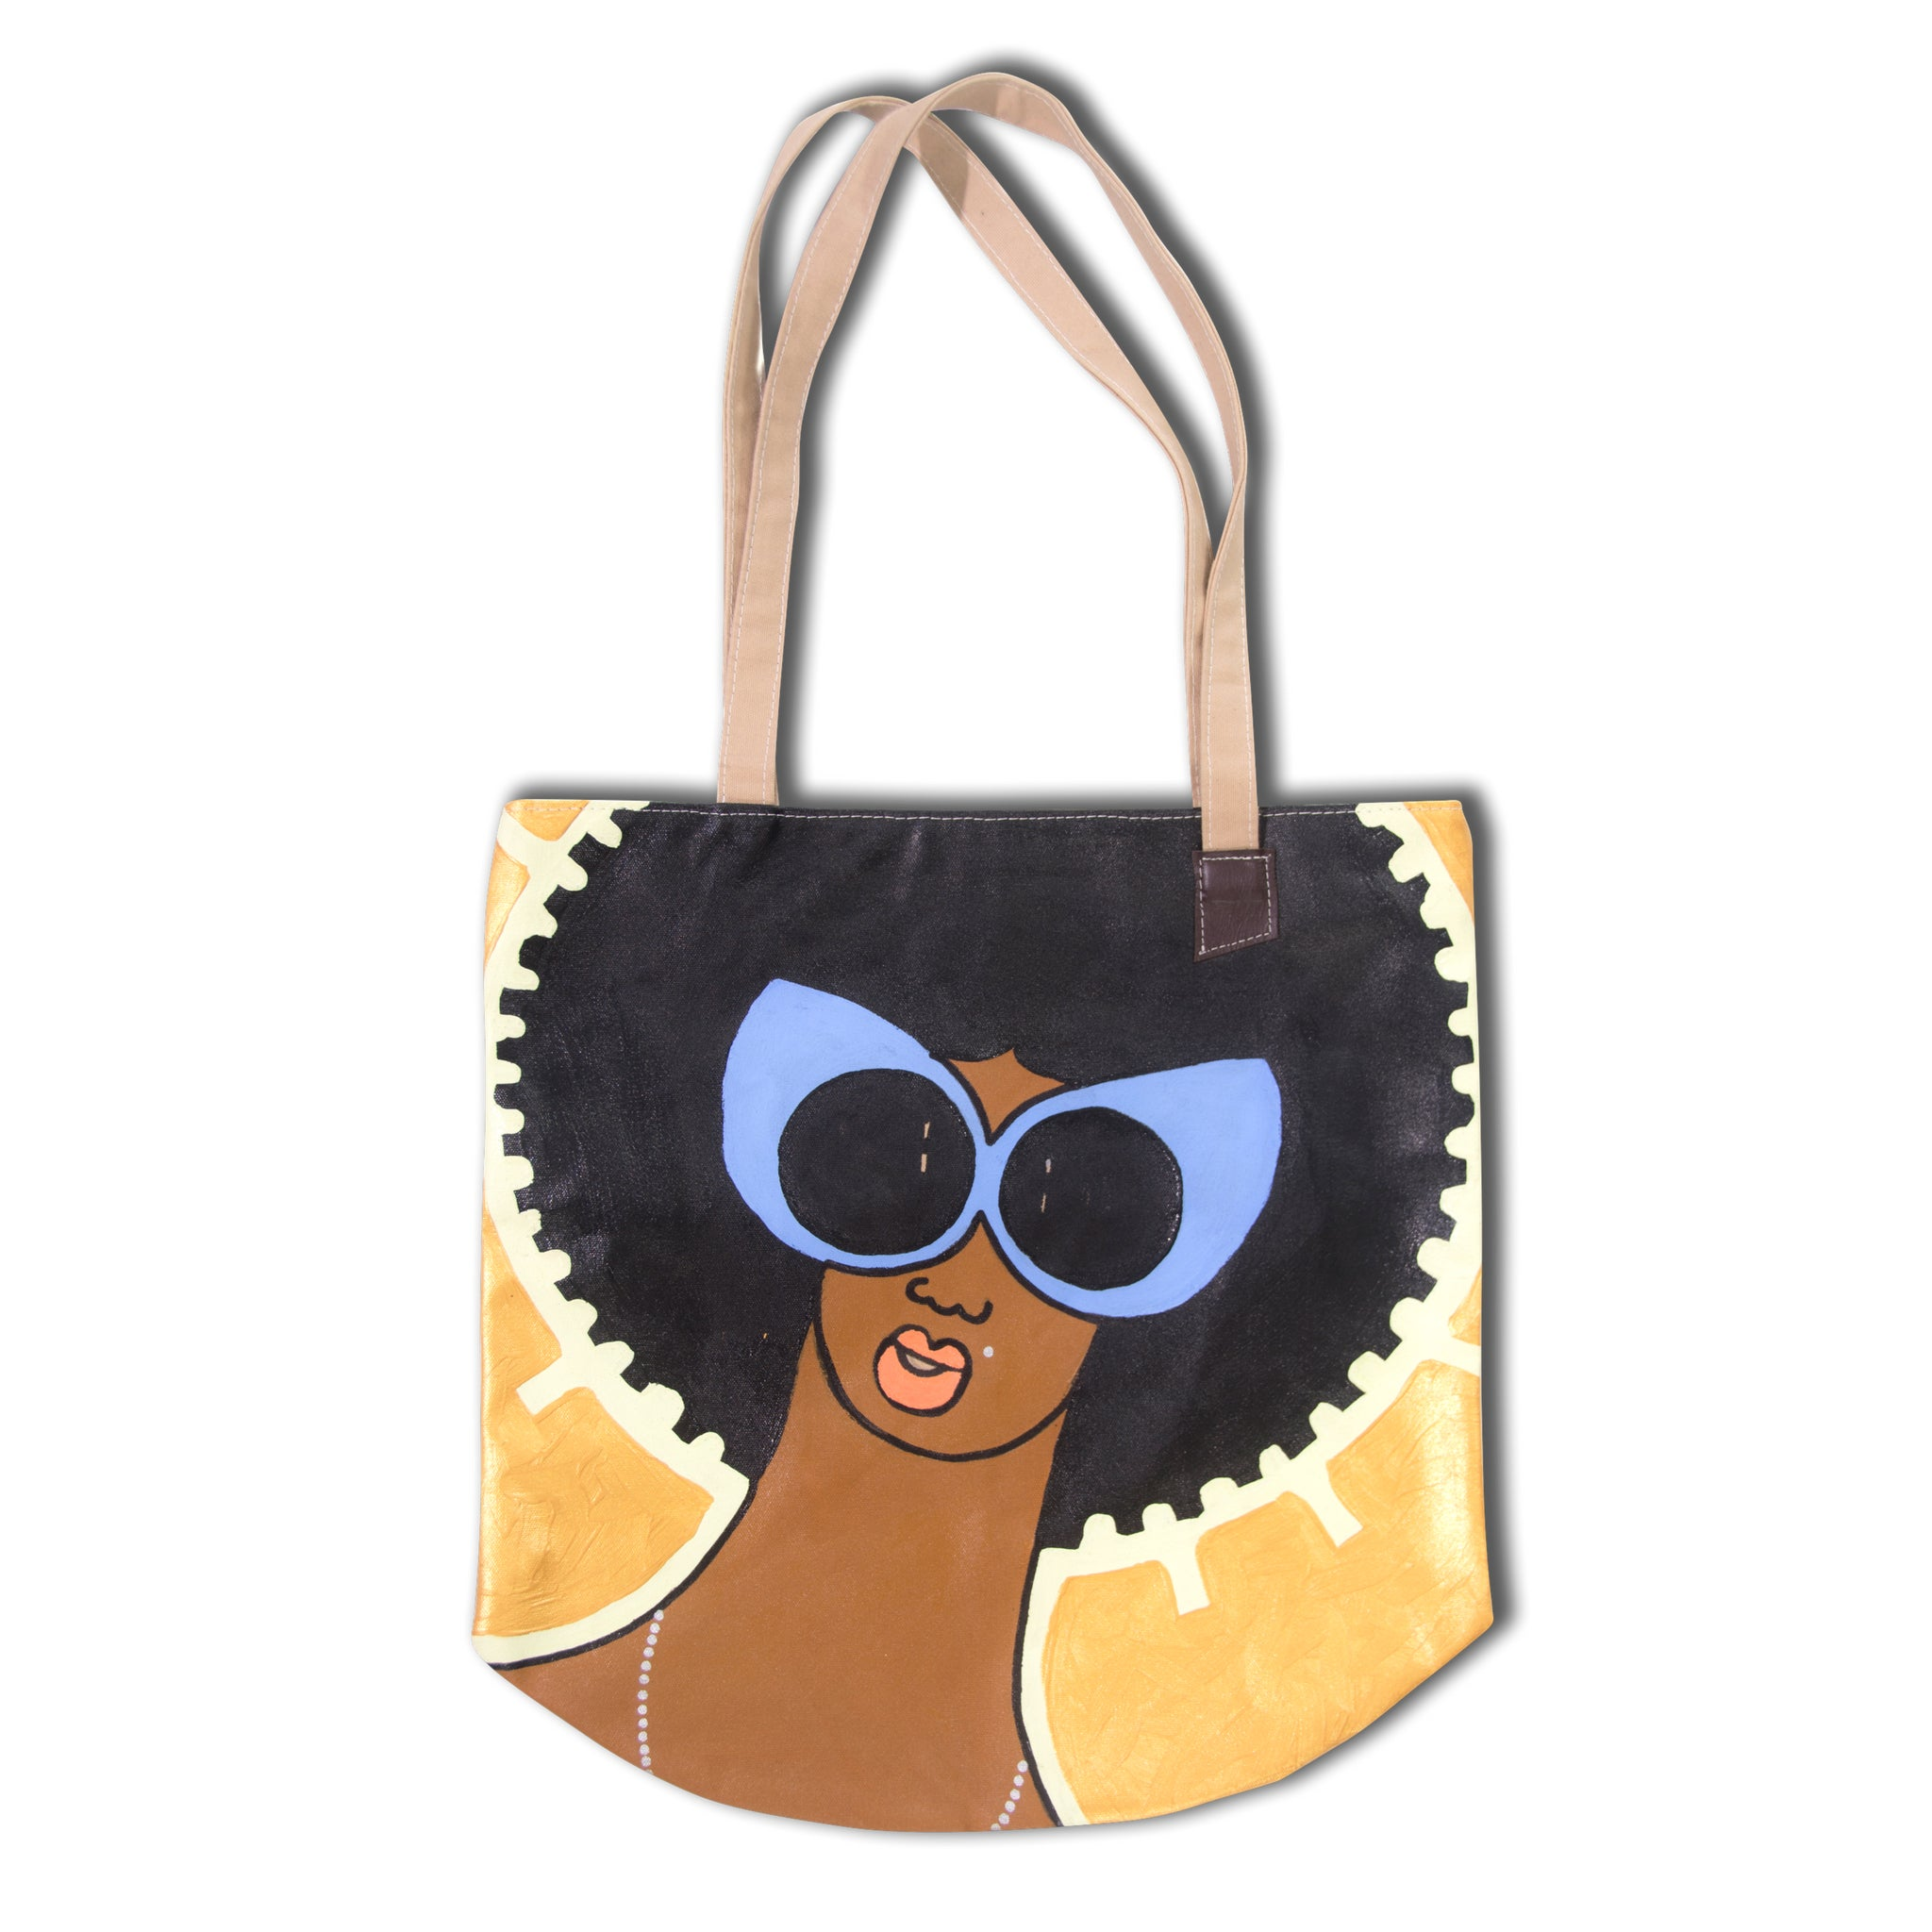 Michael Soi Art Bag tote #2 now available at Jamhuri Wear Market Boutique